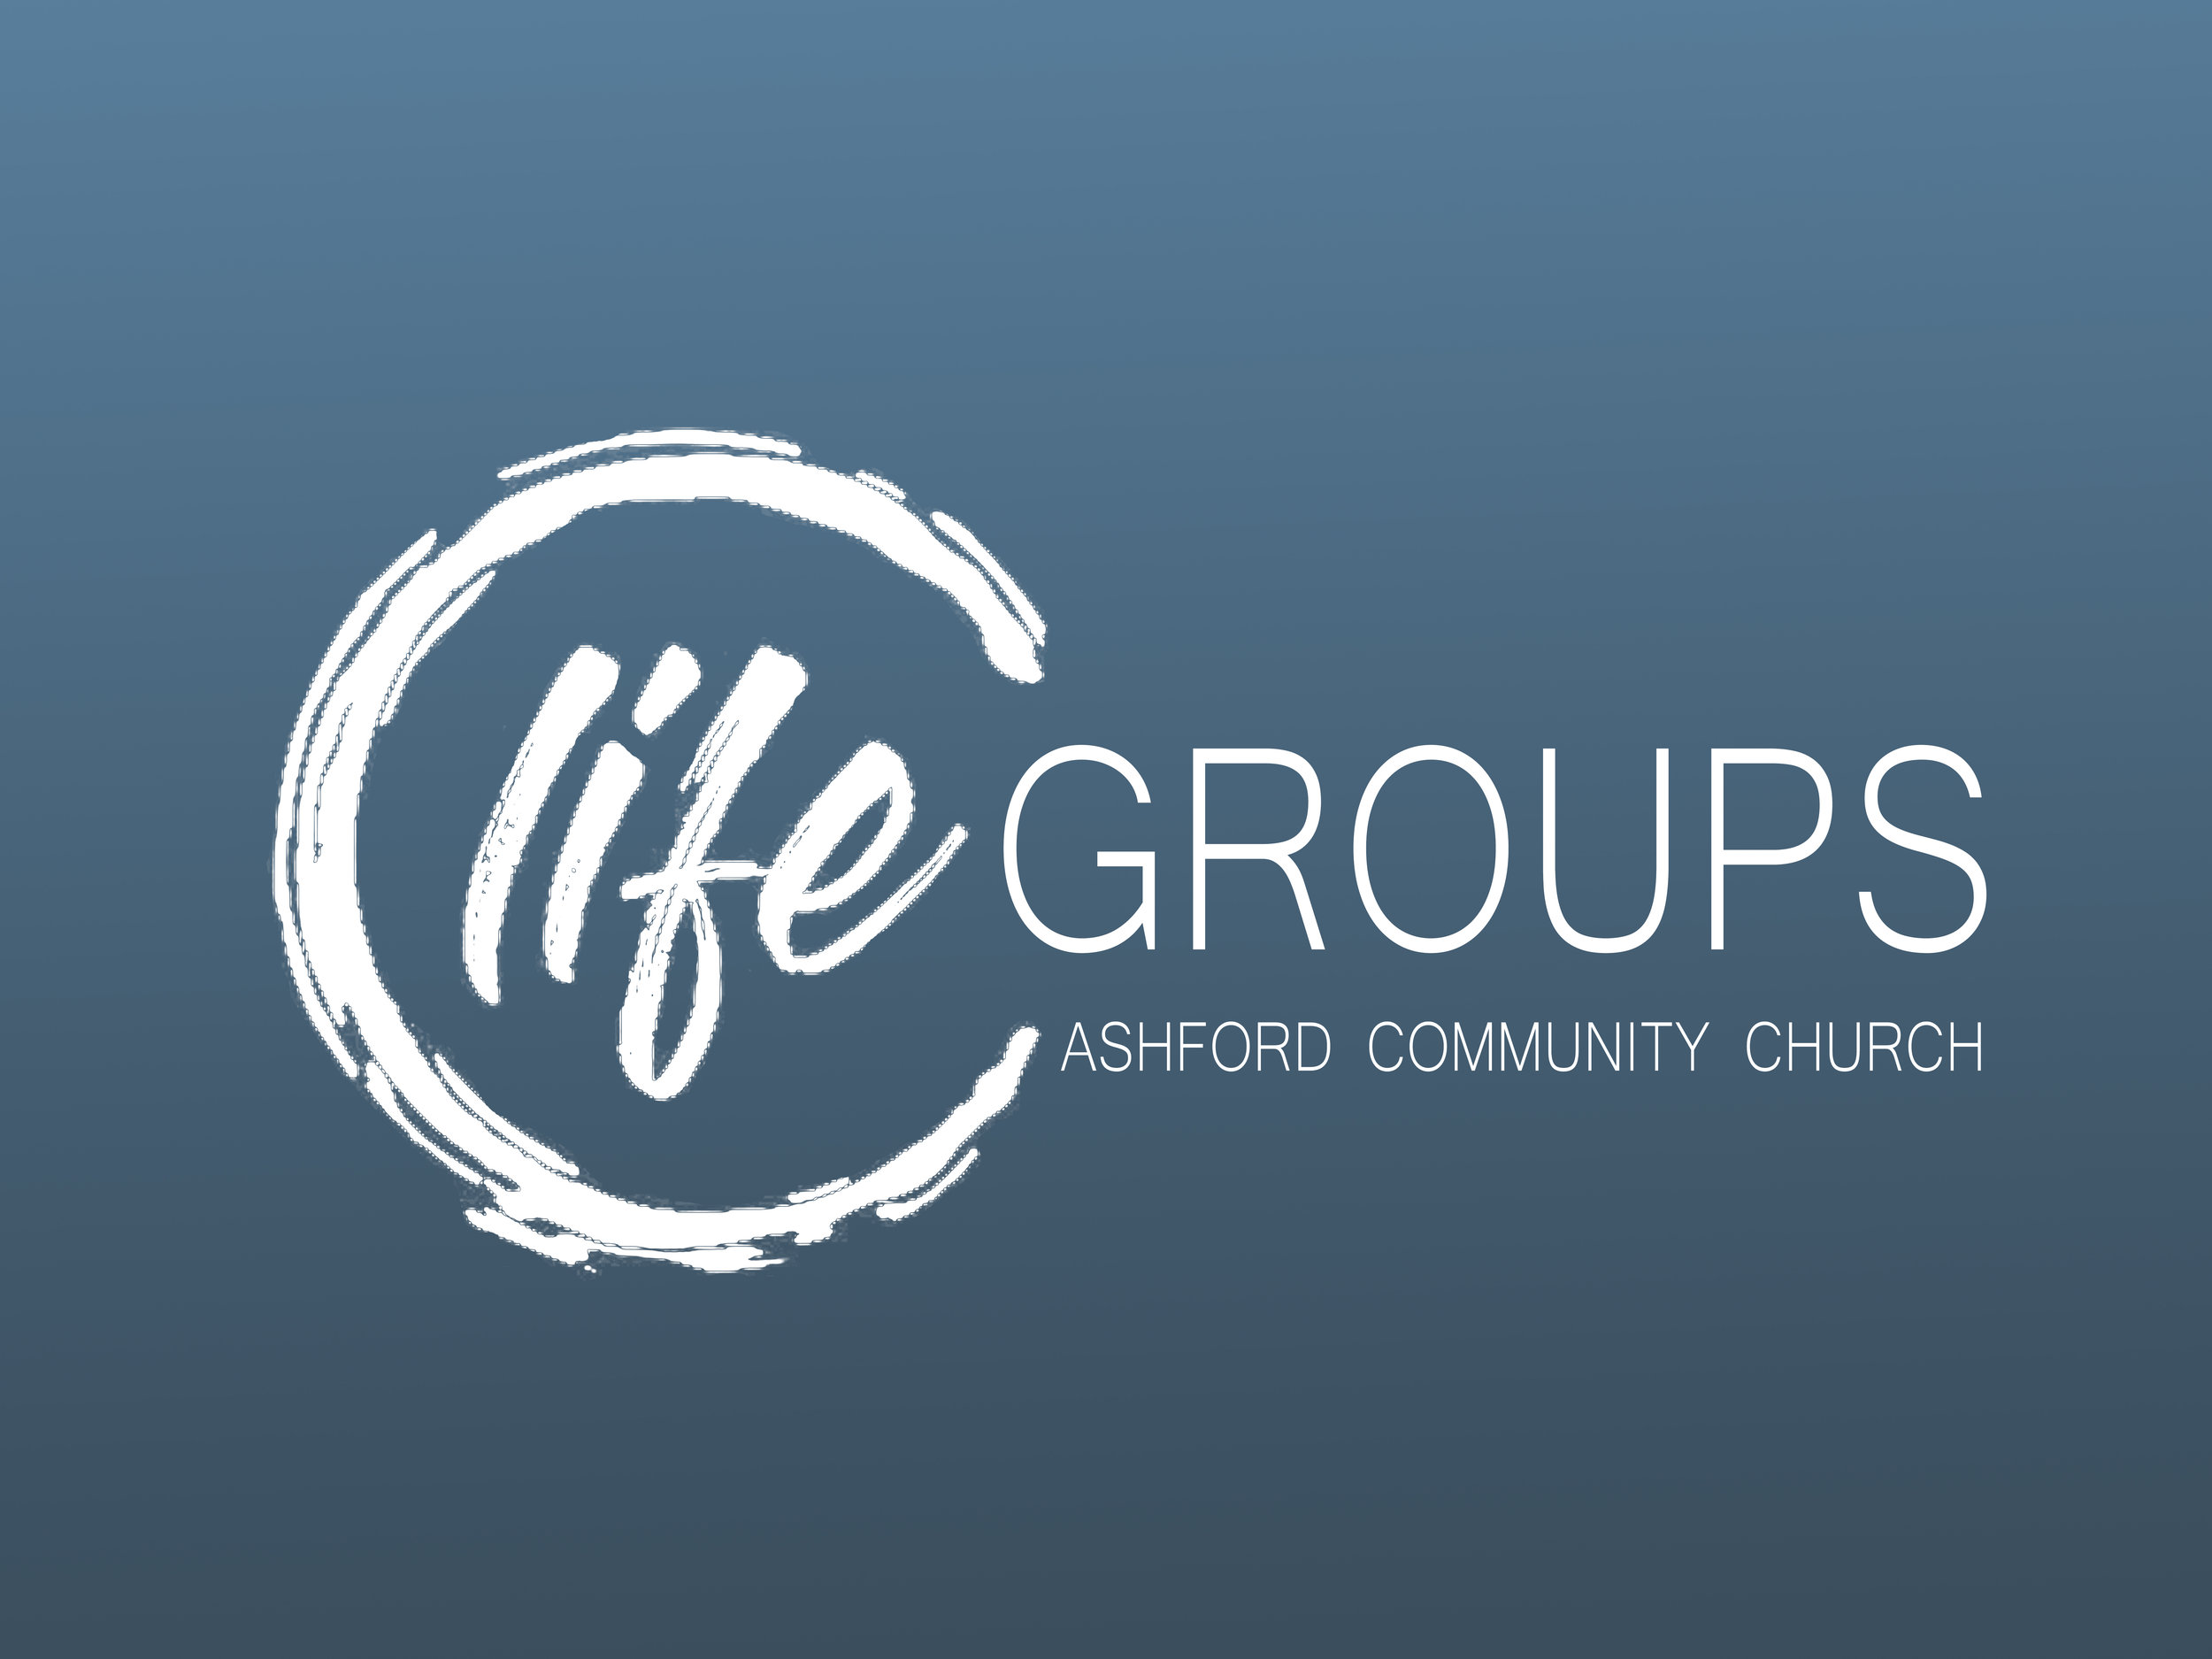 Ready Set - Join us for a four week Sunday school class all about missions, your calling, and where to start serving. Beginning in march at 9:30am.Contact: Tina Underwood at tina@ashfordcc.com